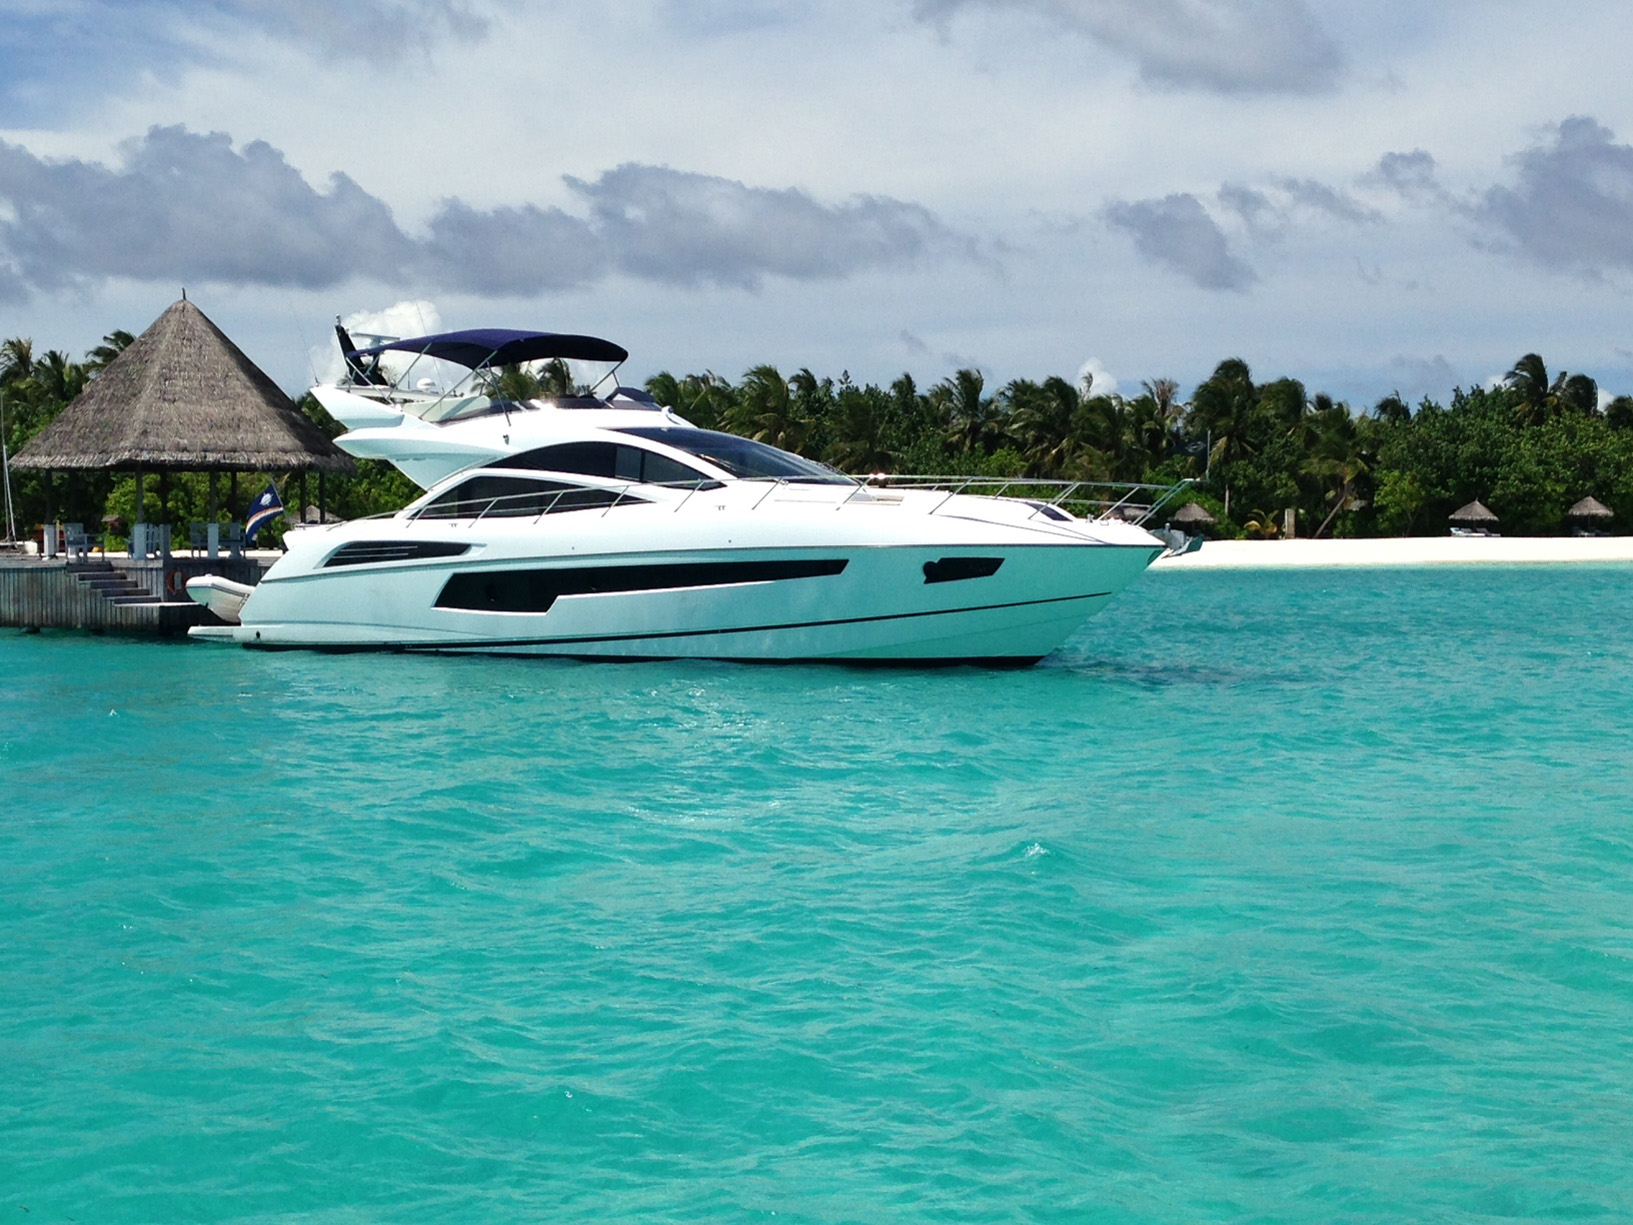 The-fantastic-Maldives-yacht-charter-destination-in-the-Indian-Ocean.jpg